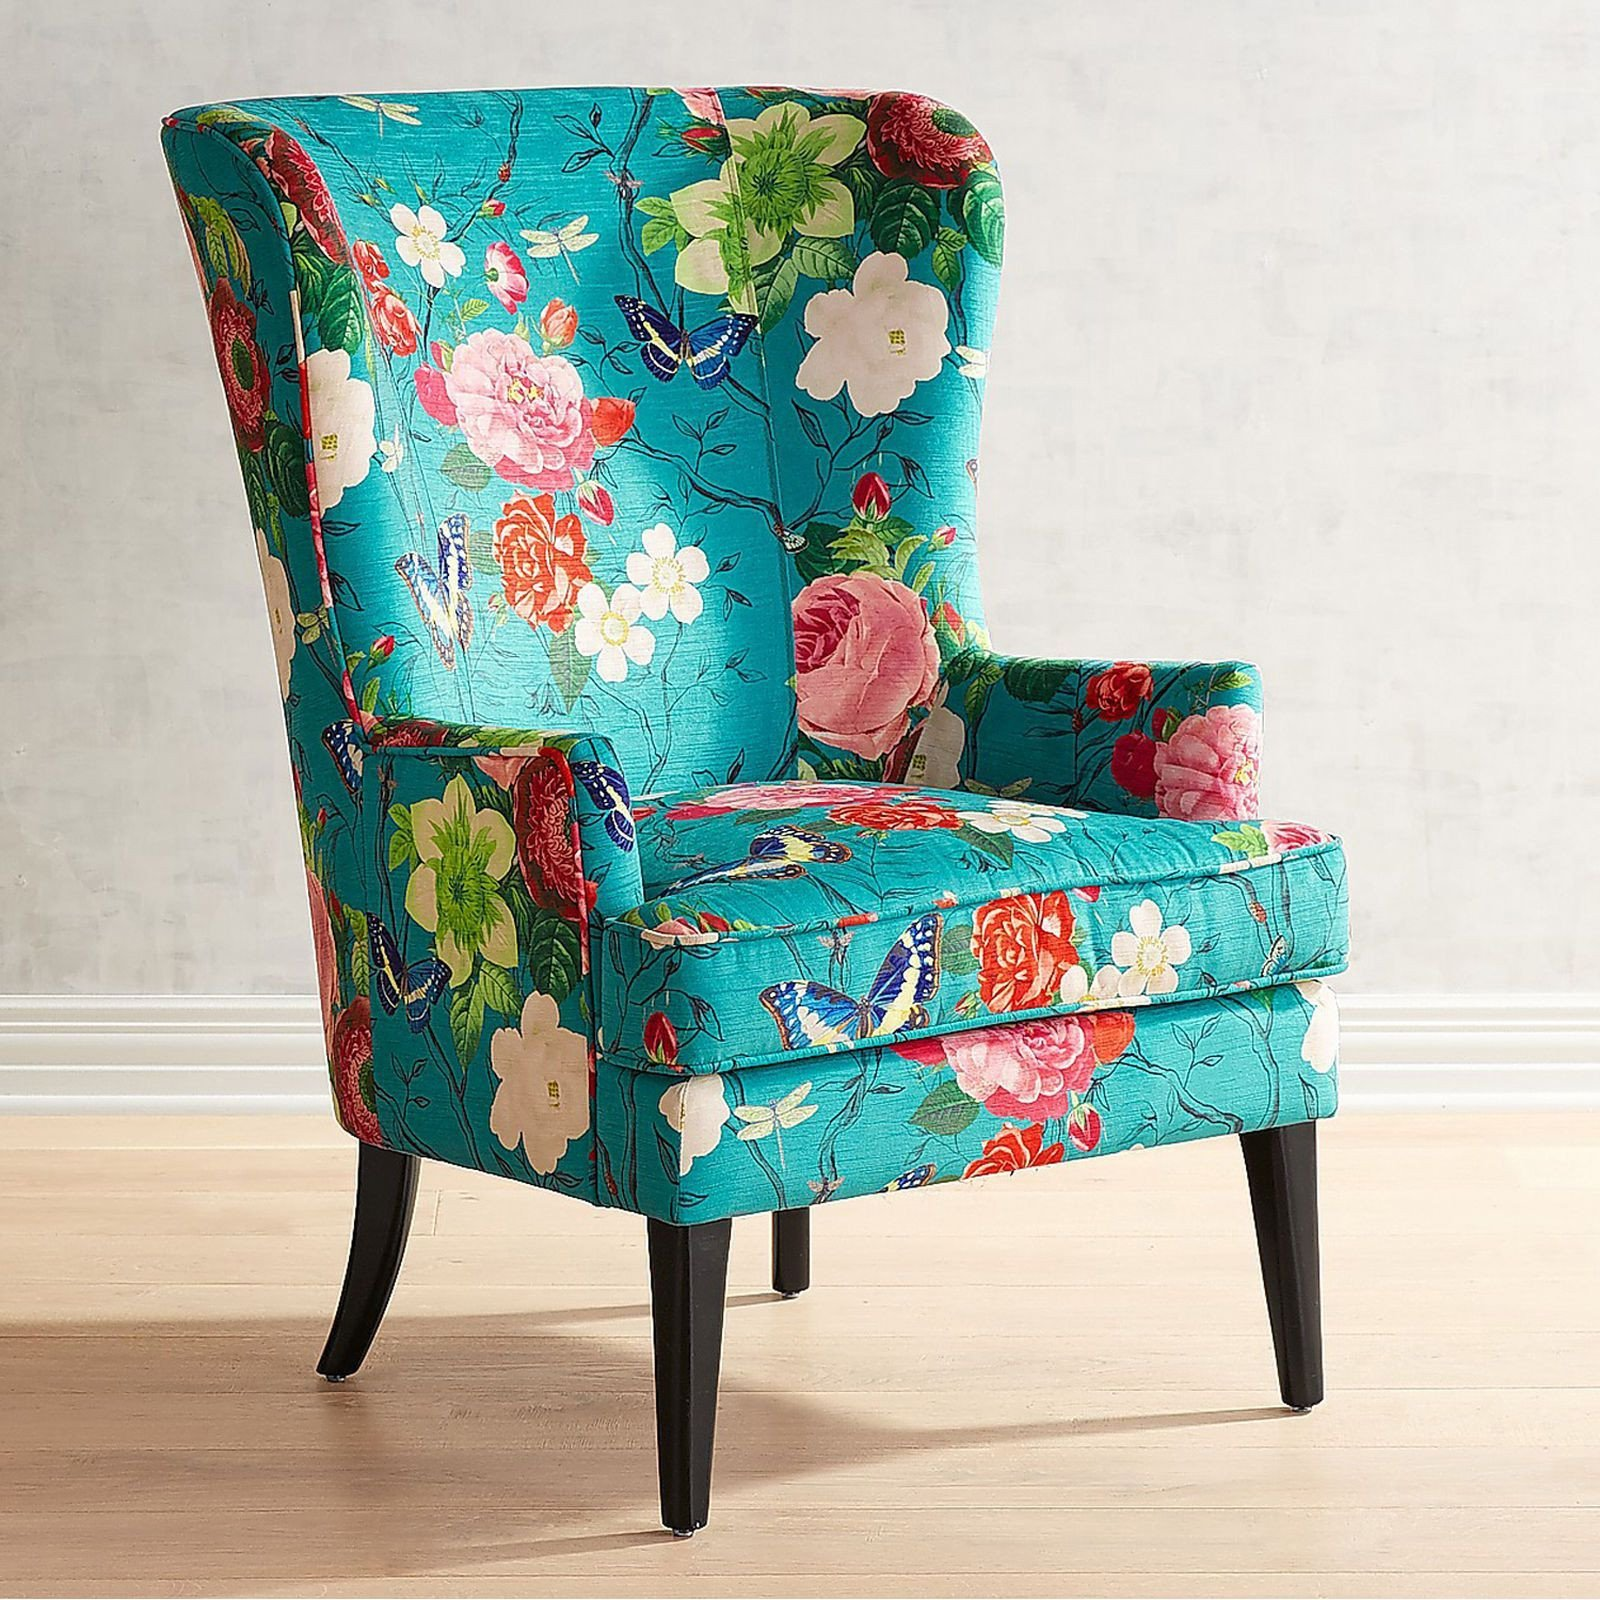 Small Comfy Chair for Bedroom Luxury asher Flynn Floral Print Chair